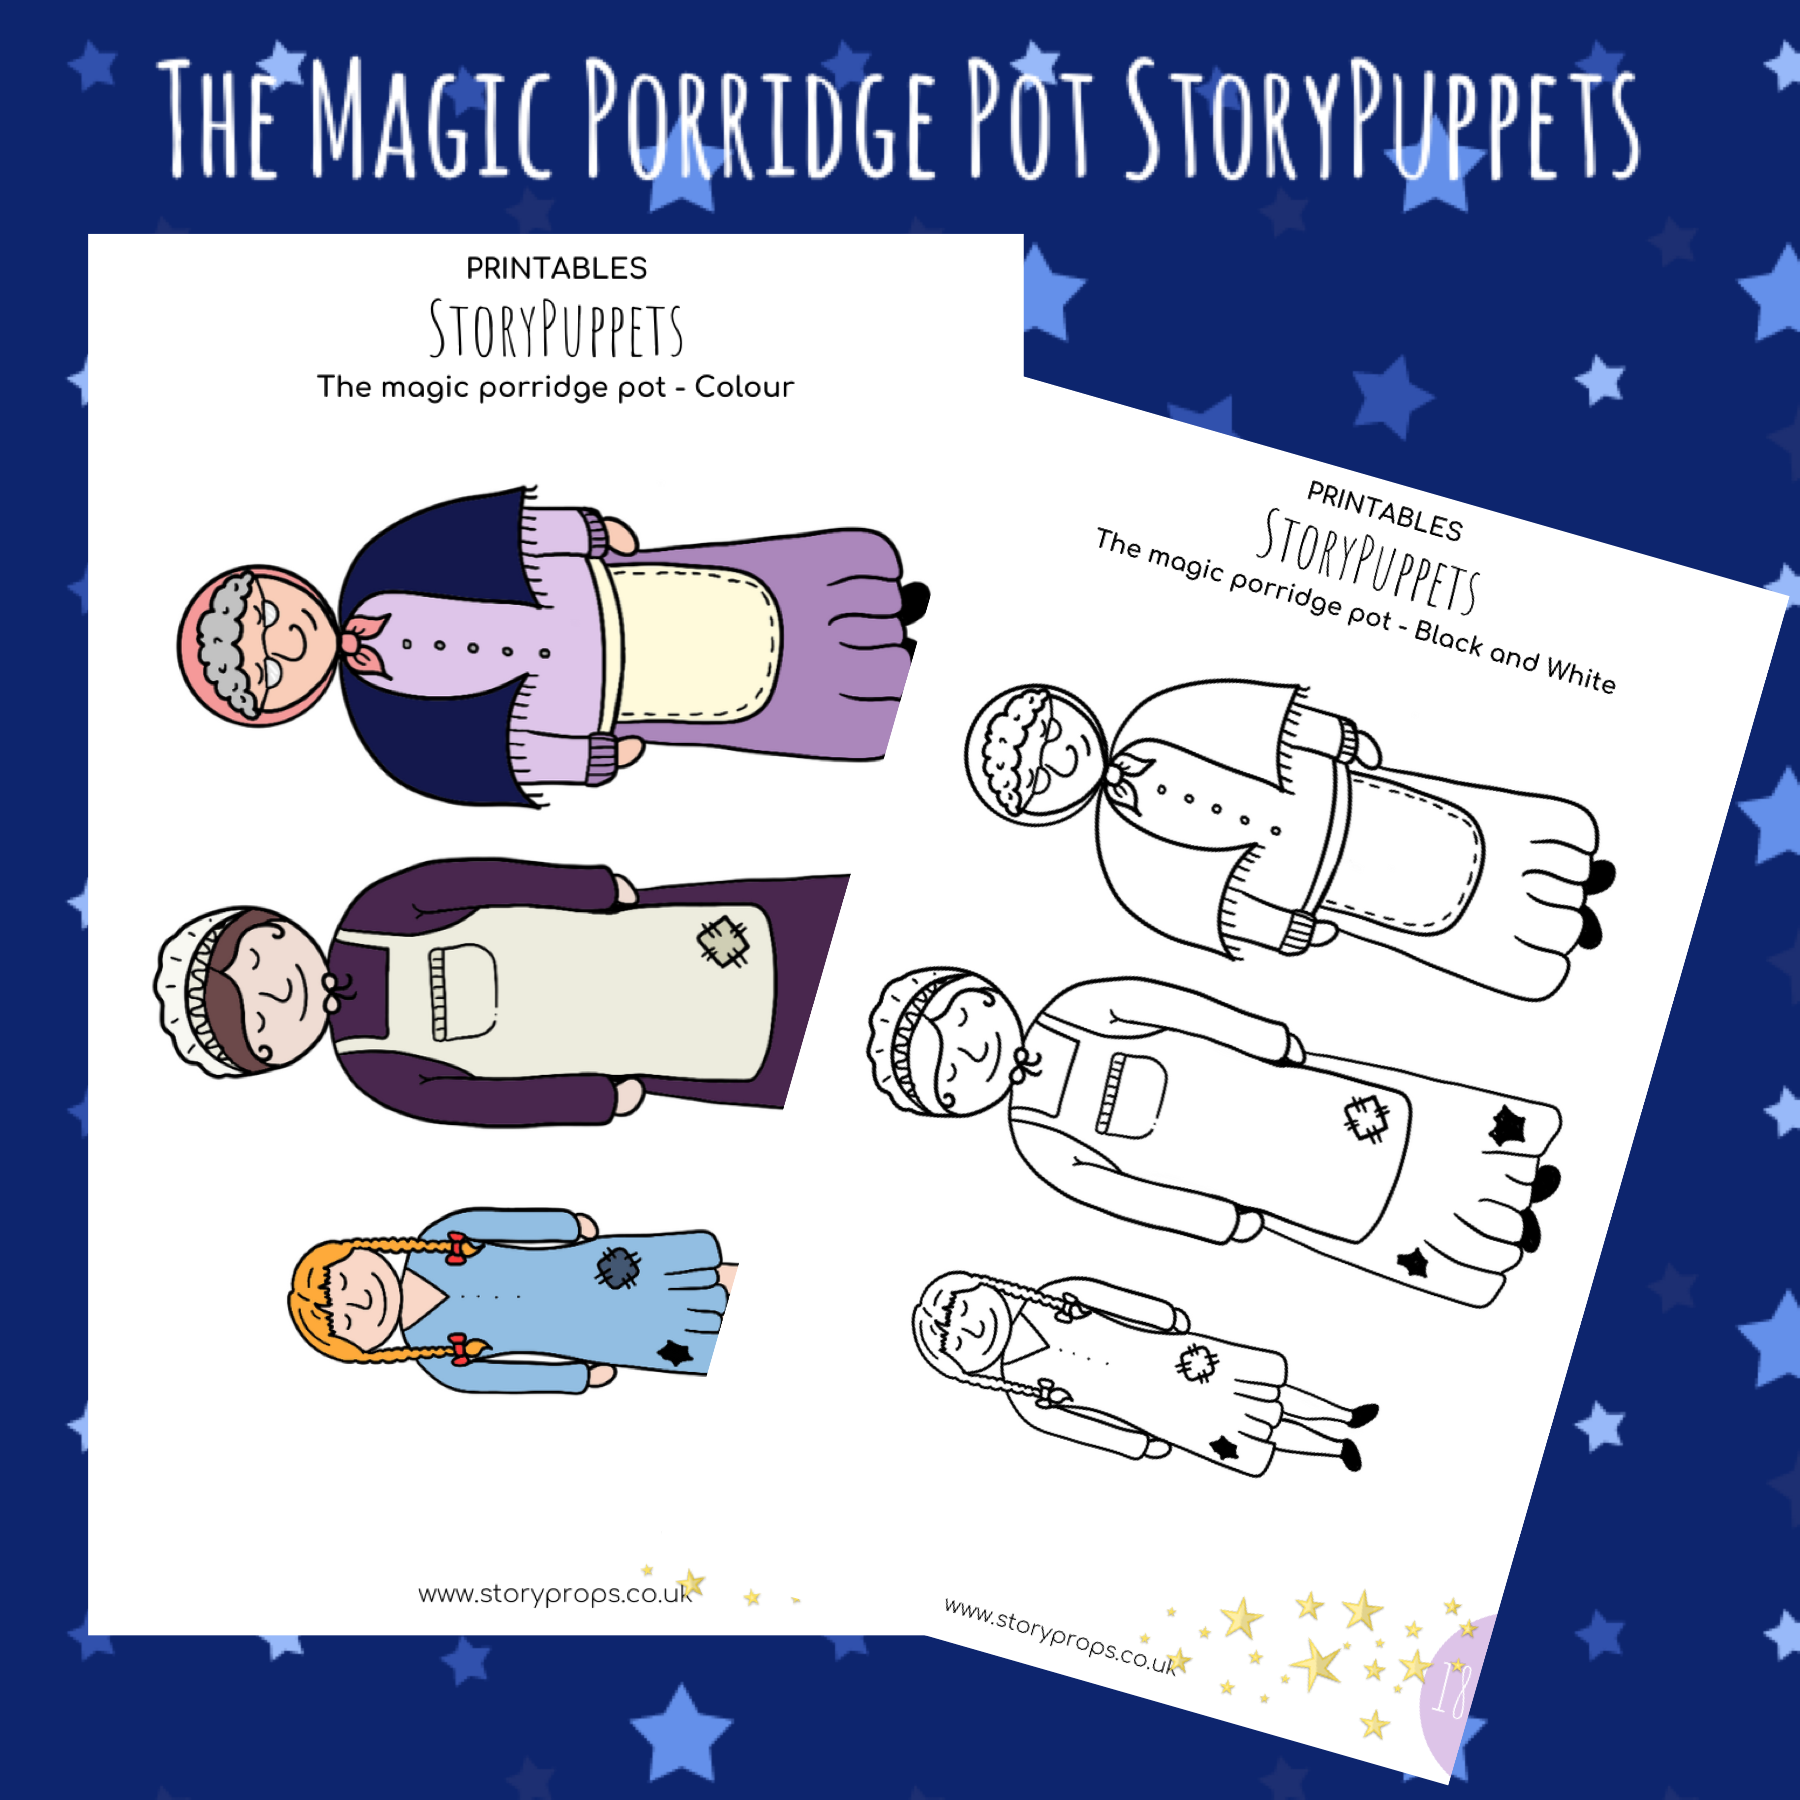 The Magic Porridge Pot StoryPuppets in 2020 Traditional